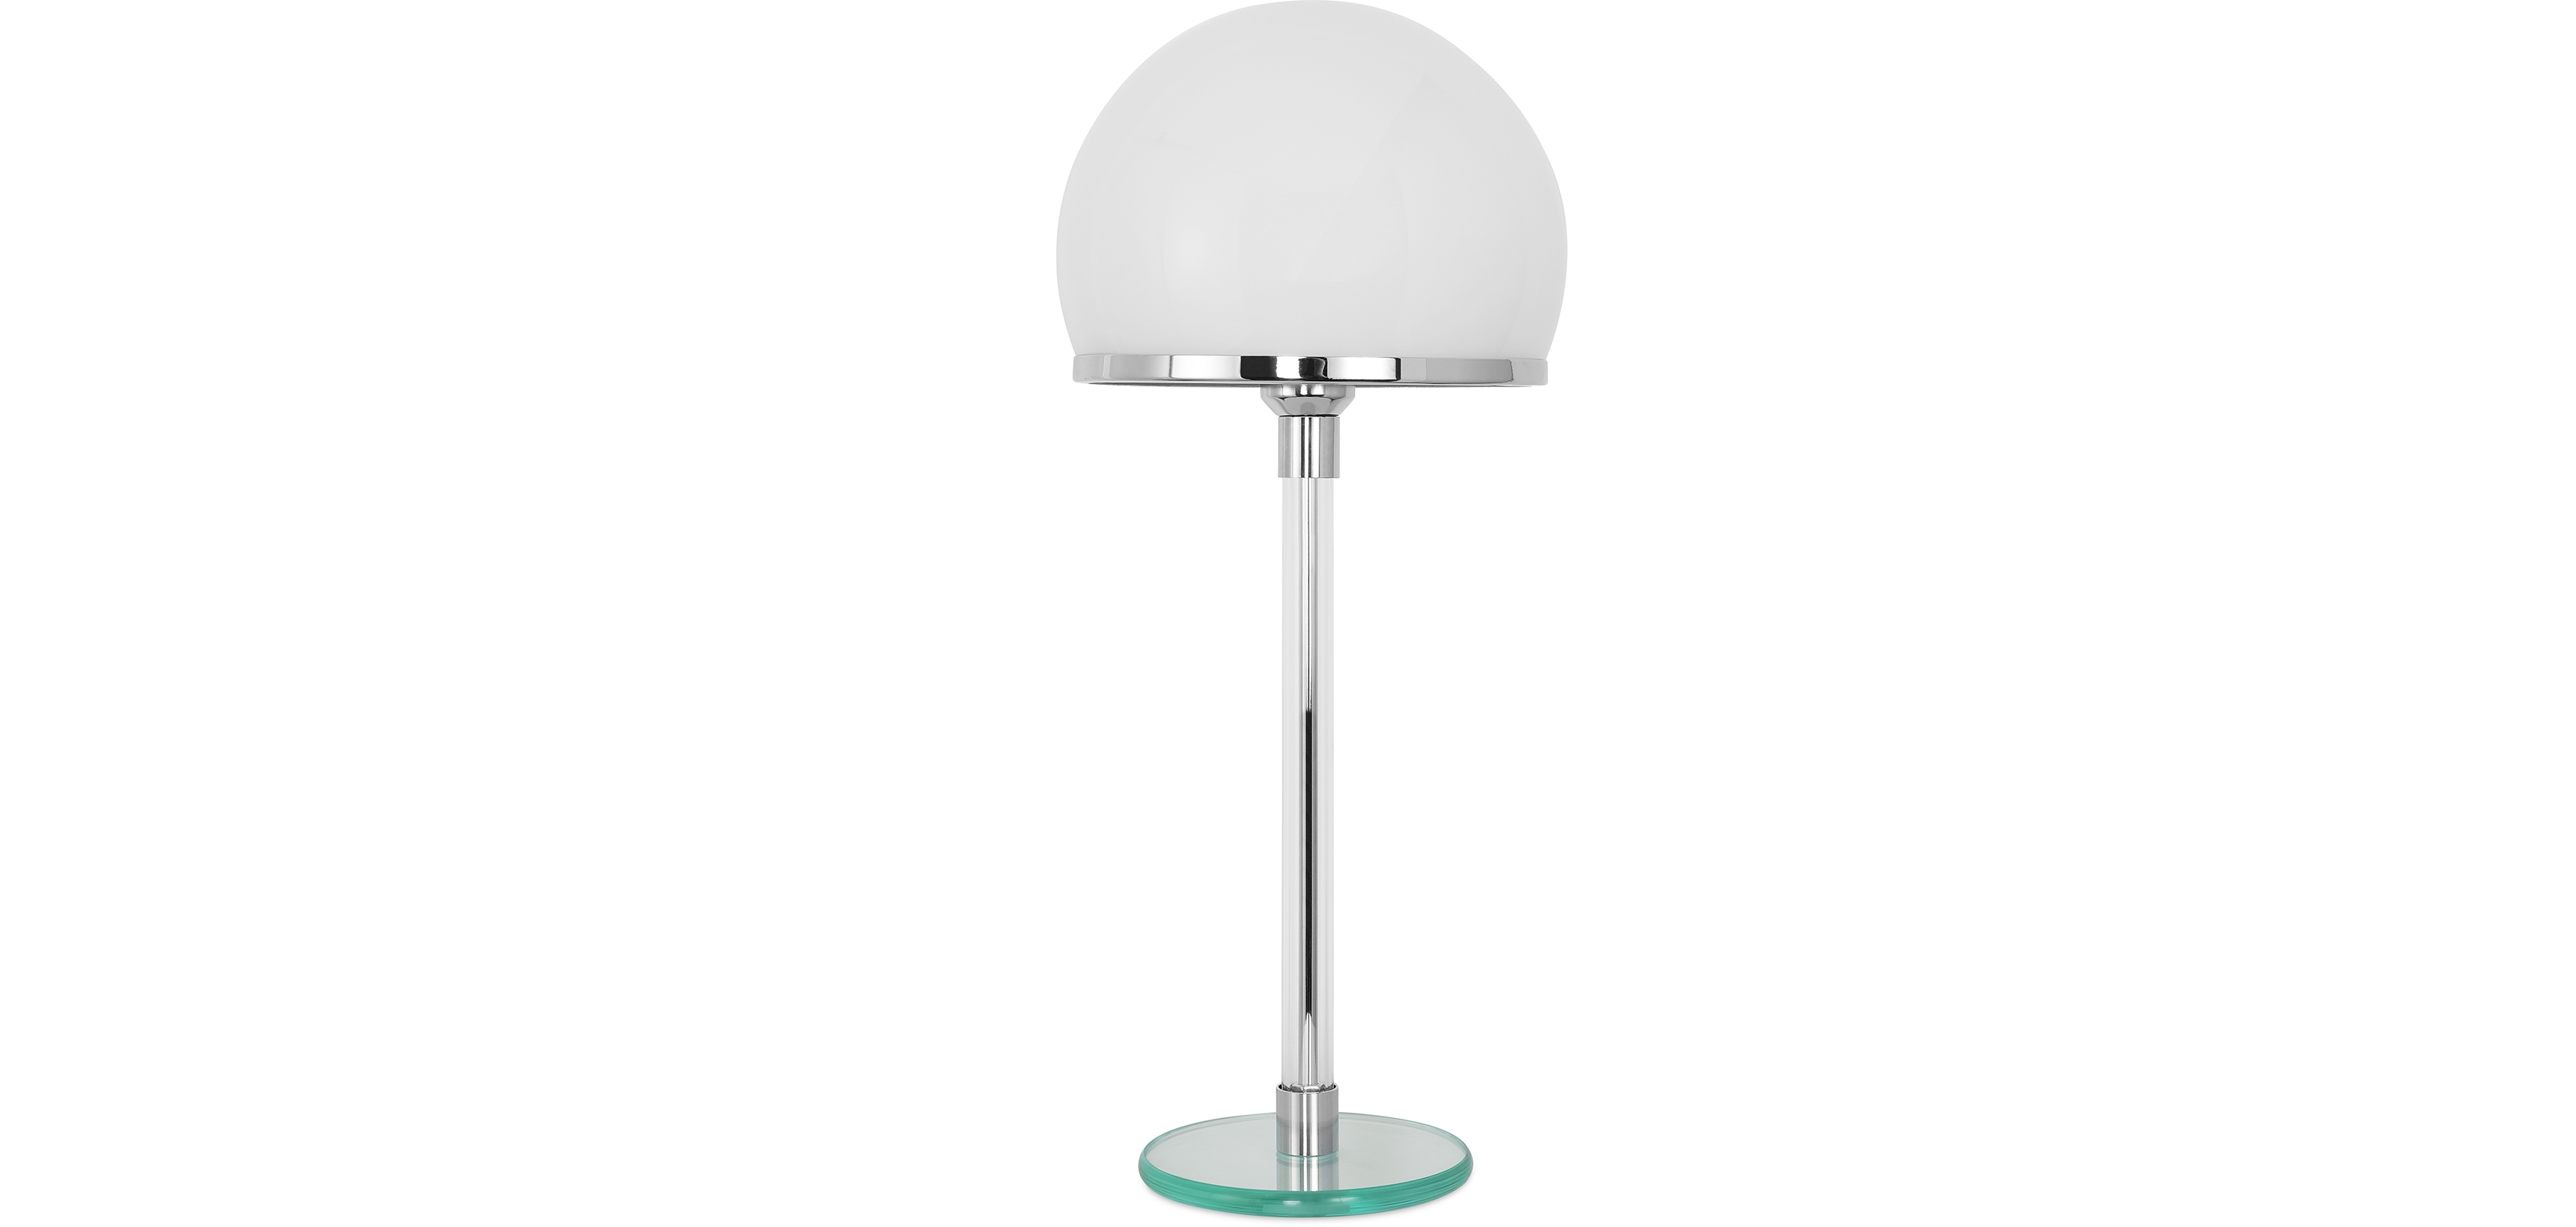 Buy Bauha Desk Lamp - Chrome Copper/Opal Glass White 13292 - in the UK